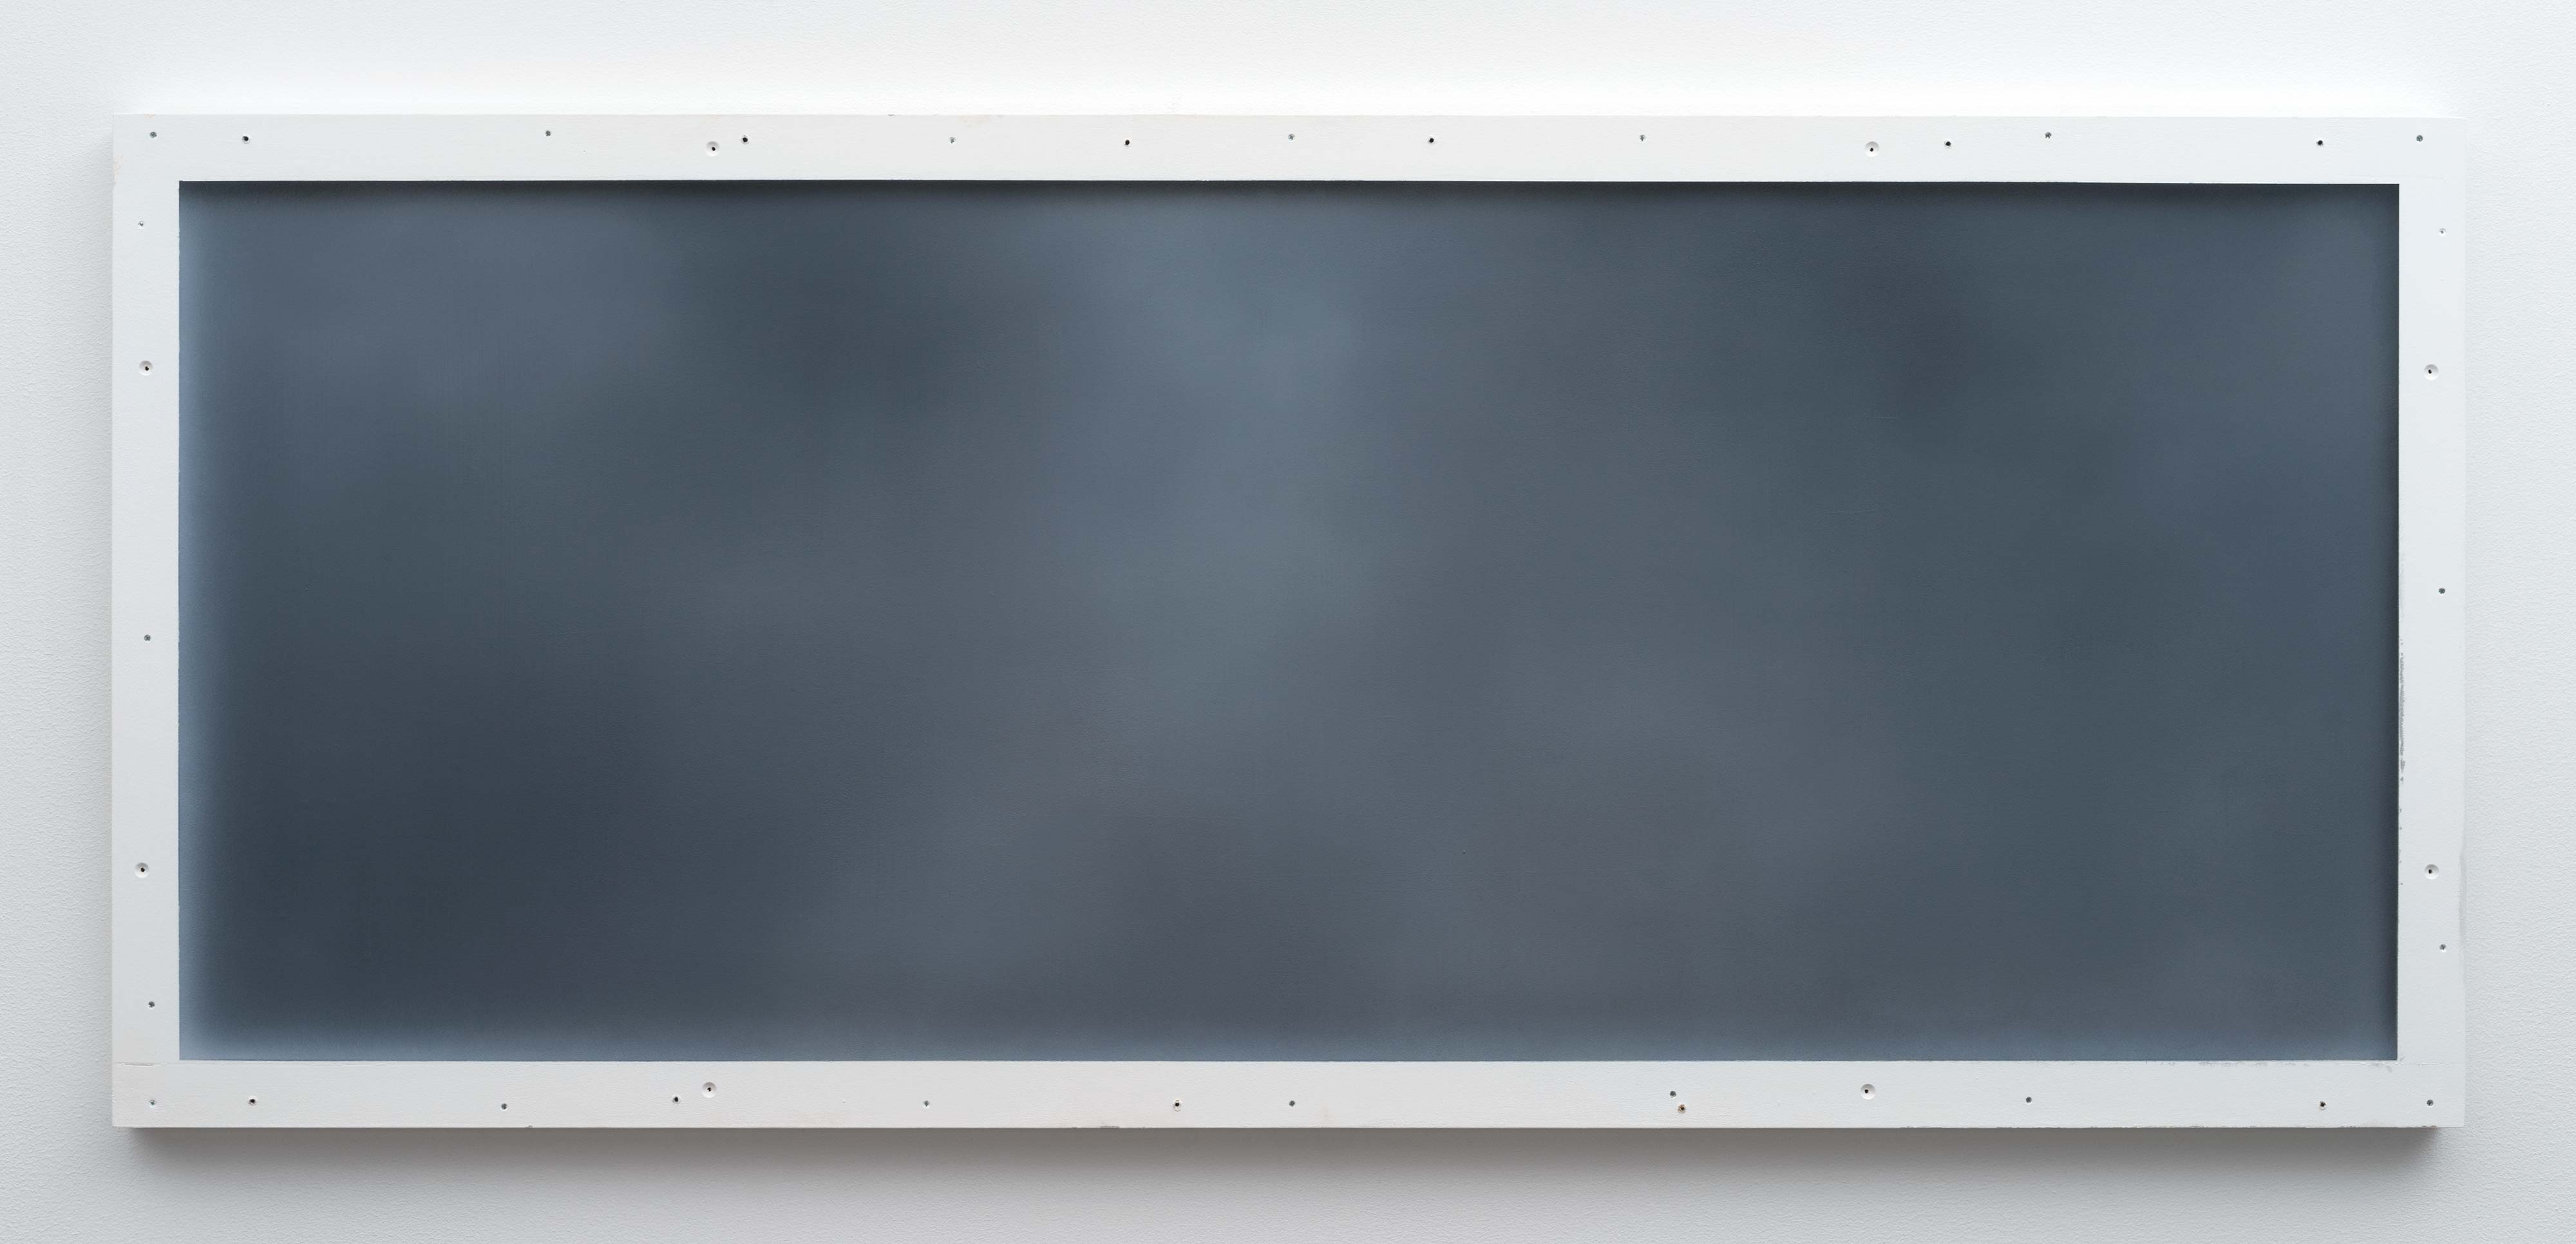 Christopher Page<br>Nocturne (I)<br>2016<br>oil and acrylic on panel<br>23.6 x 54.3 in (60 x 138 cm)